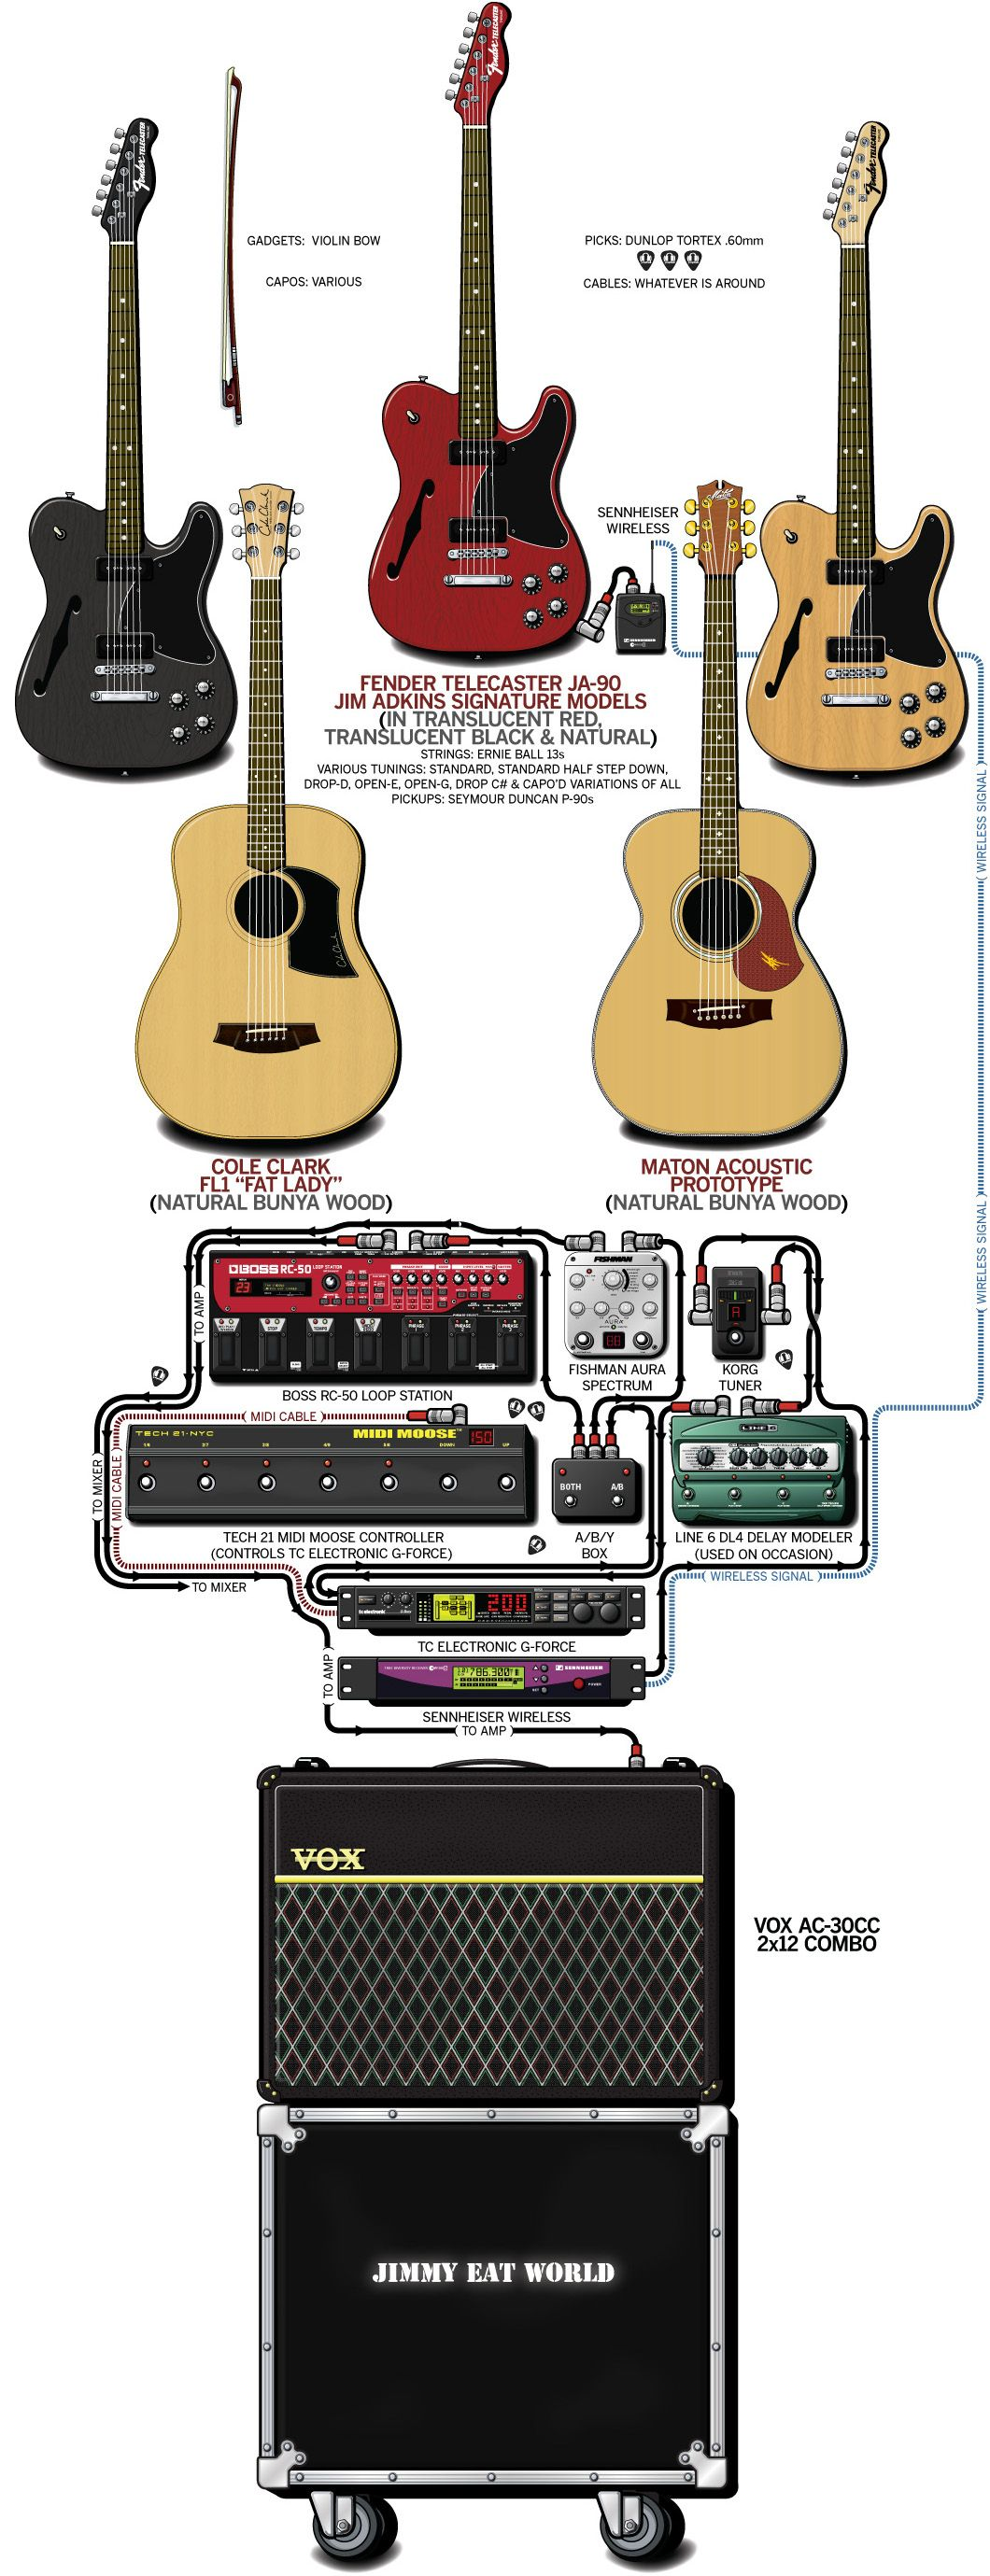 a detailed gear diagram of jim adkins 39 2012 jimmy eat world stage setup that traces the signal. Black Bedroom Furniture Sets. Home Design Ideas